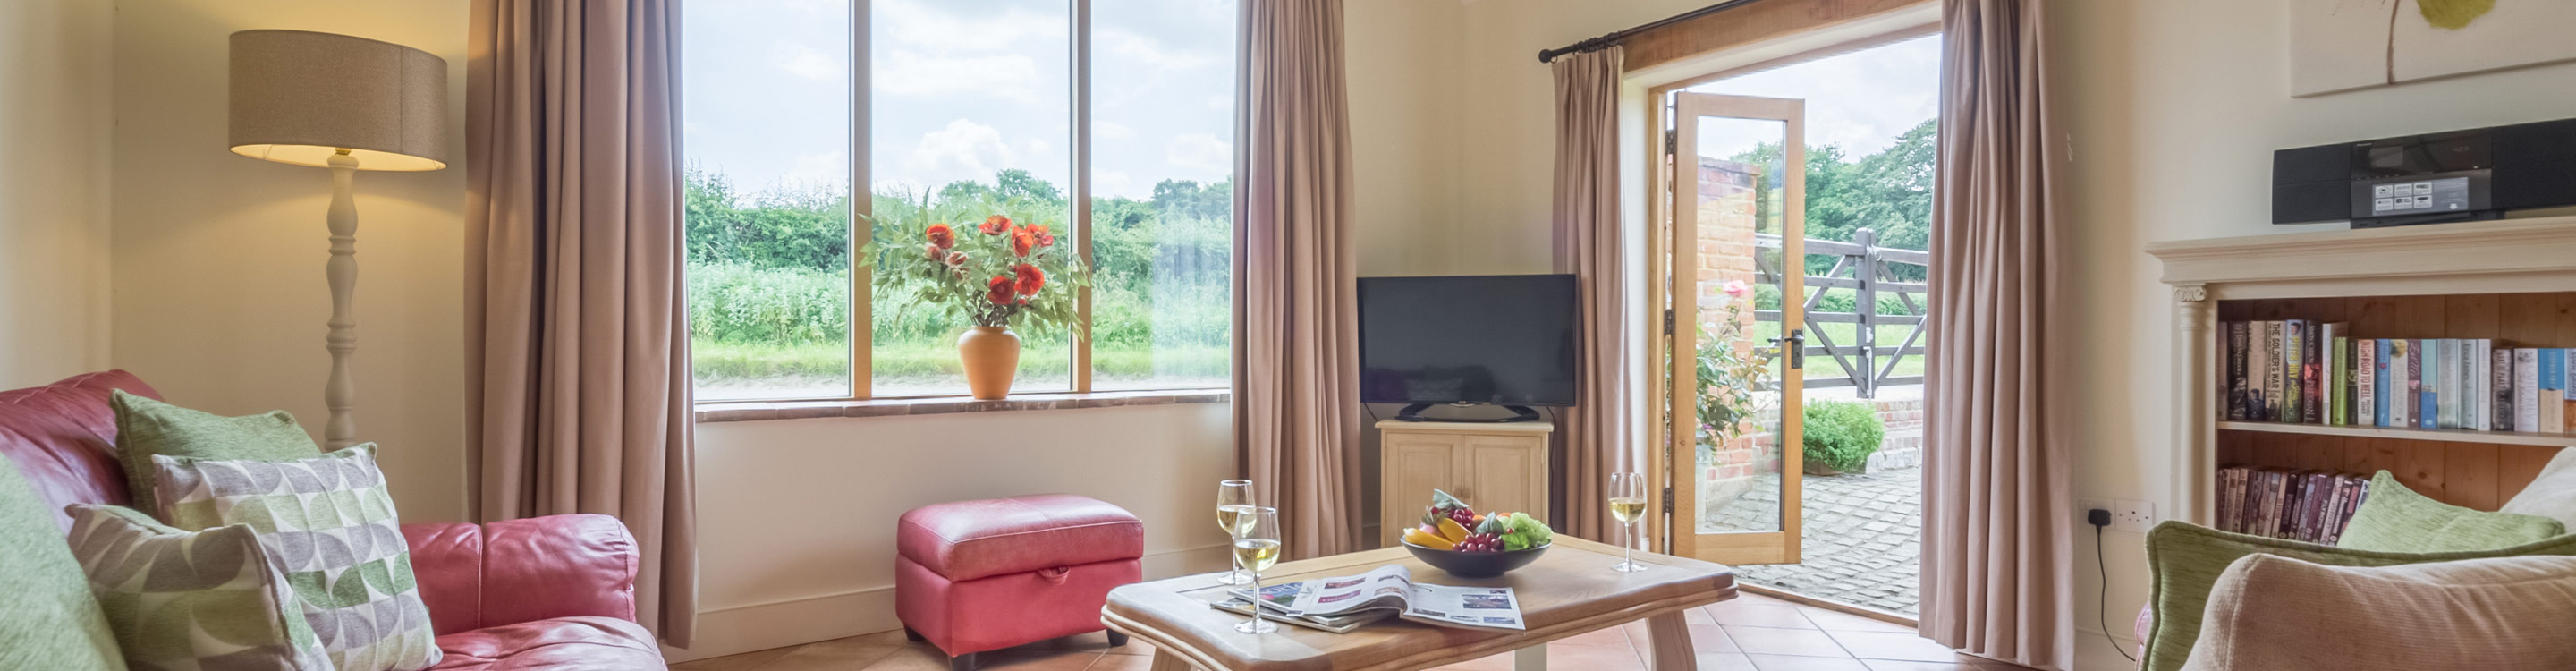 Self-Catering Accommodation in Norfolk